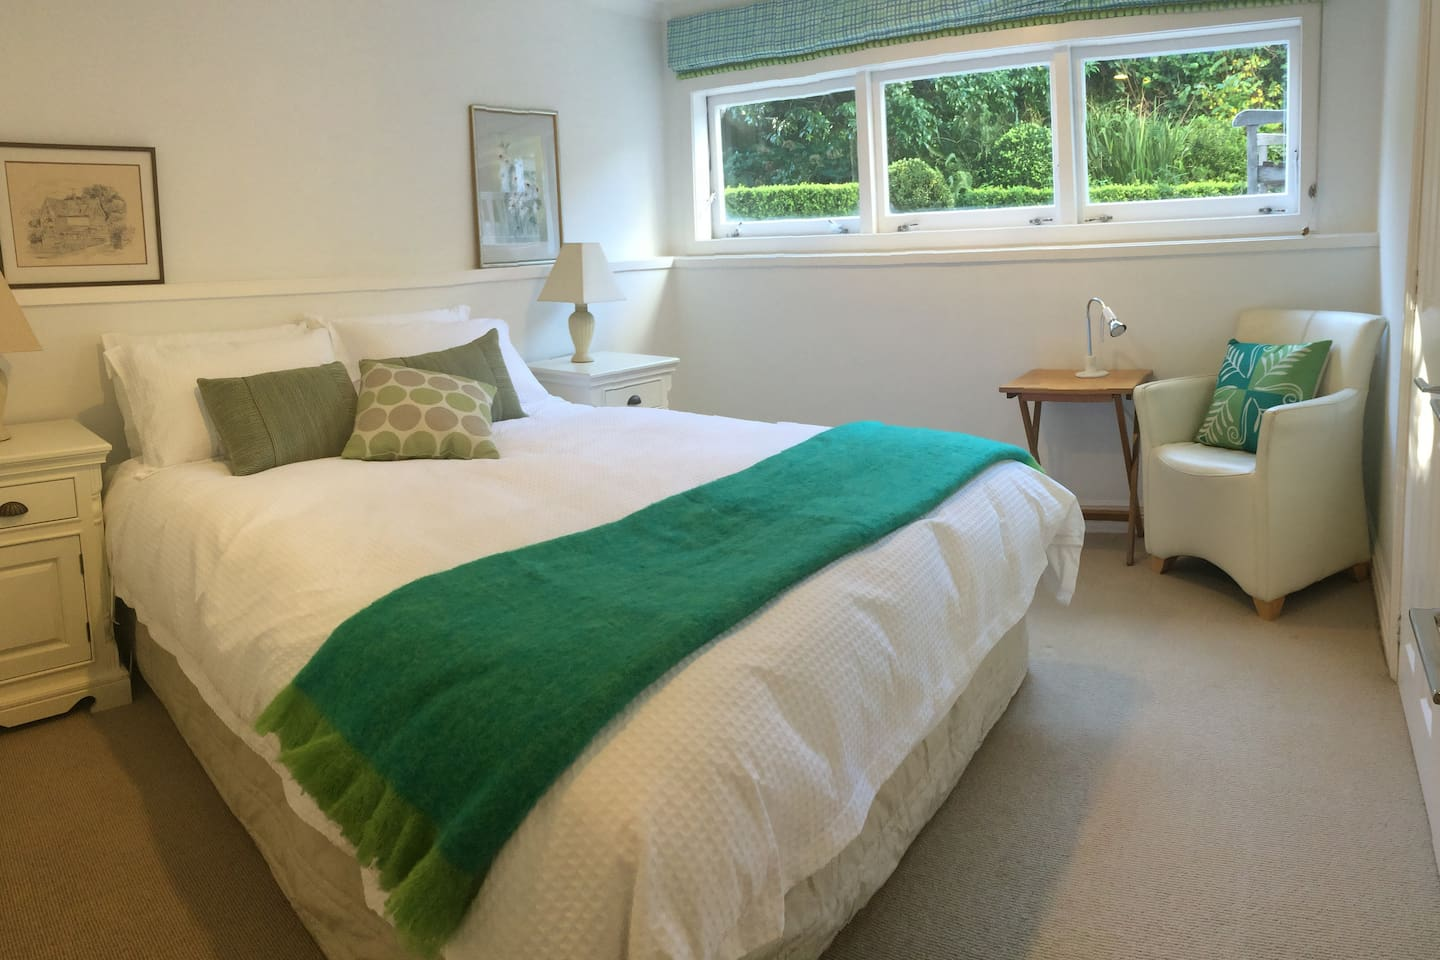 Light, clean bedroom with luxurious 100% cotton bedding and a choice of top quality feather and down duvets. Facing east with morning sun and garden views.